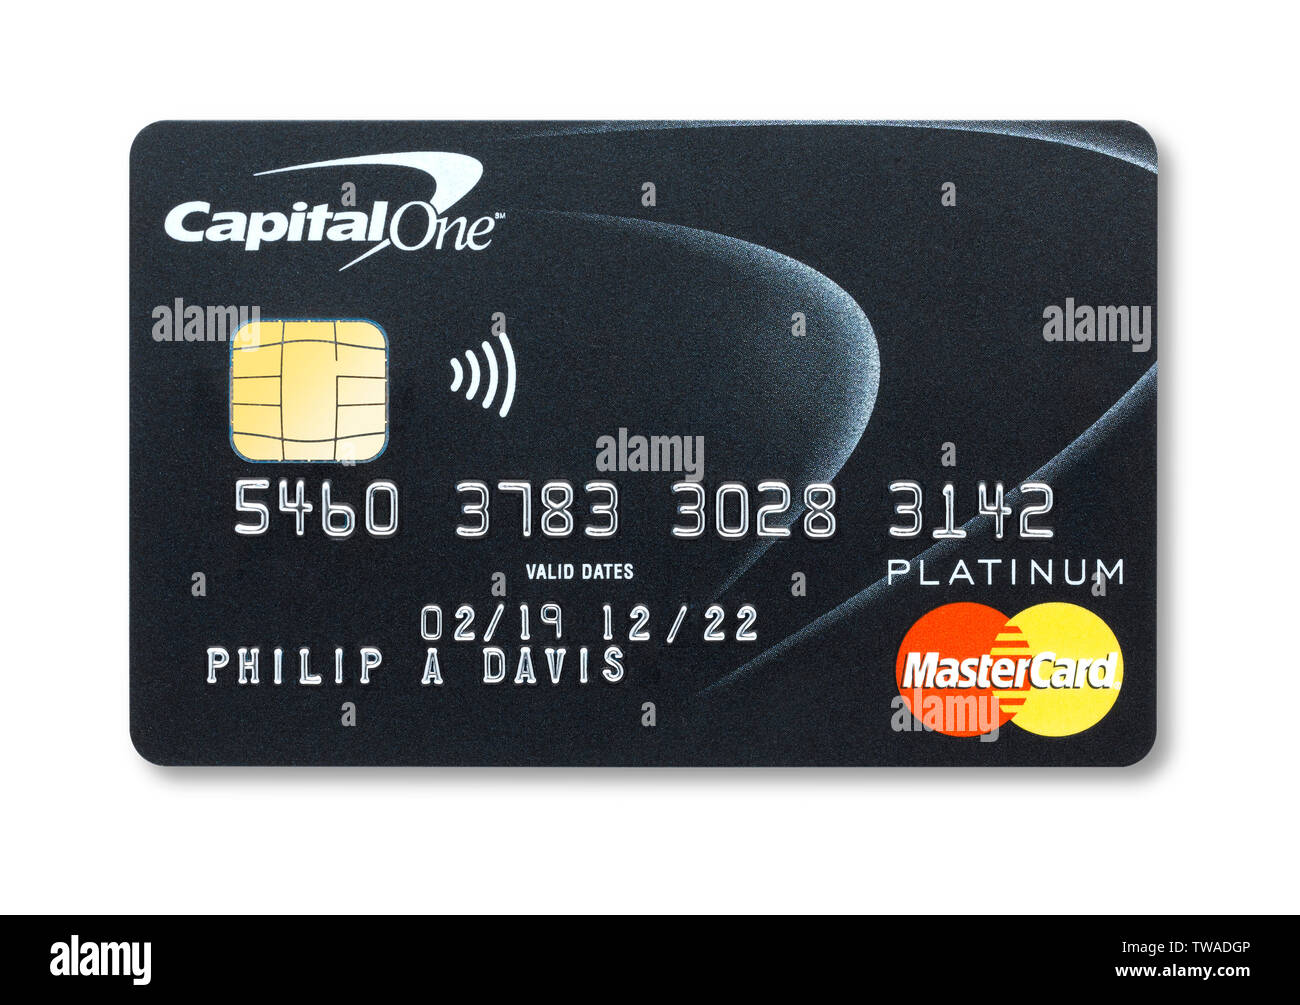 Capital One Mastercard Kreditkarte Stockbild